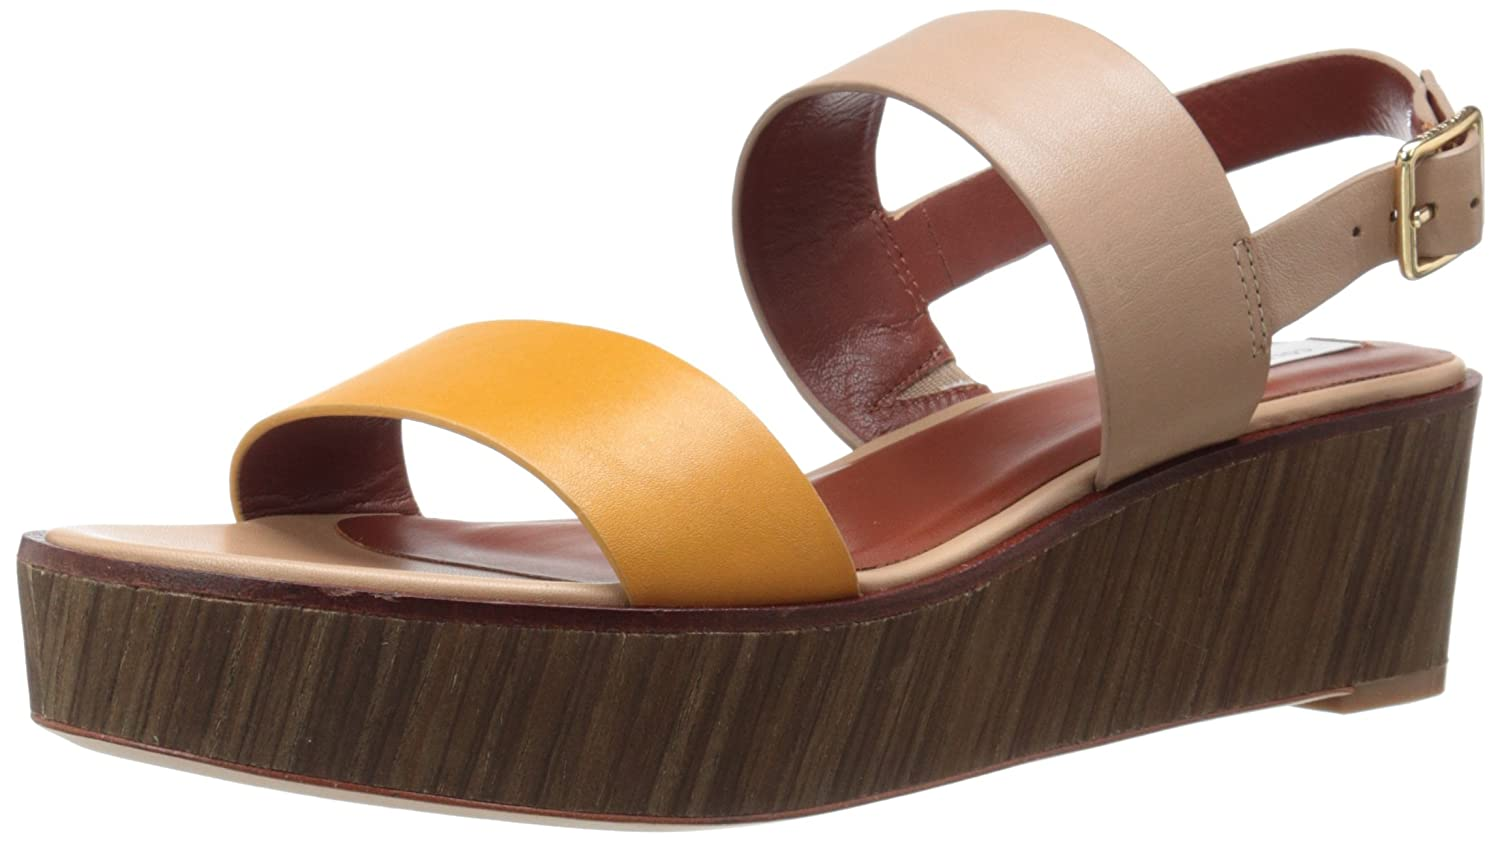 Cole Haan Women's Cambon Platform Dress Sandal B01A8HLO68 6 B(M) US Cremini Leather/Mineral Leather/Vertical Natural Stack